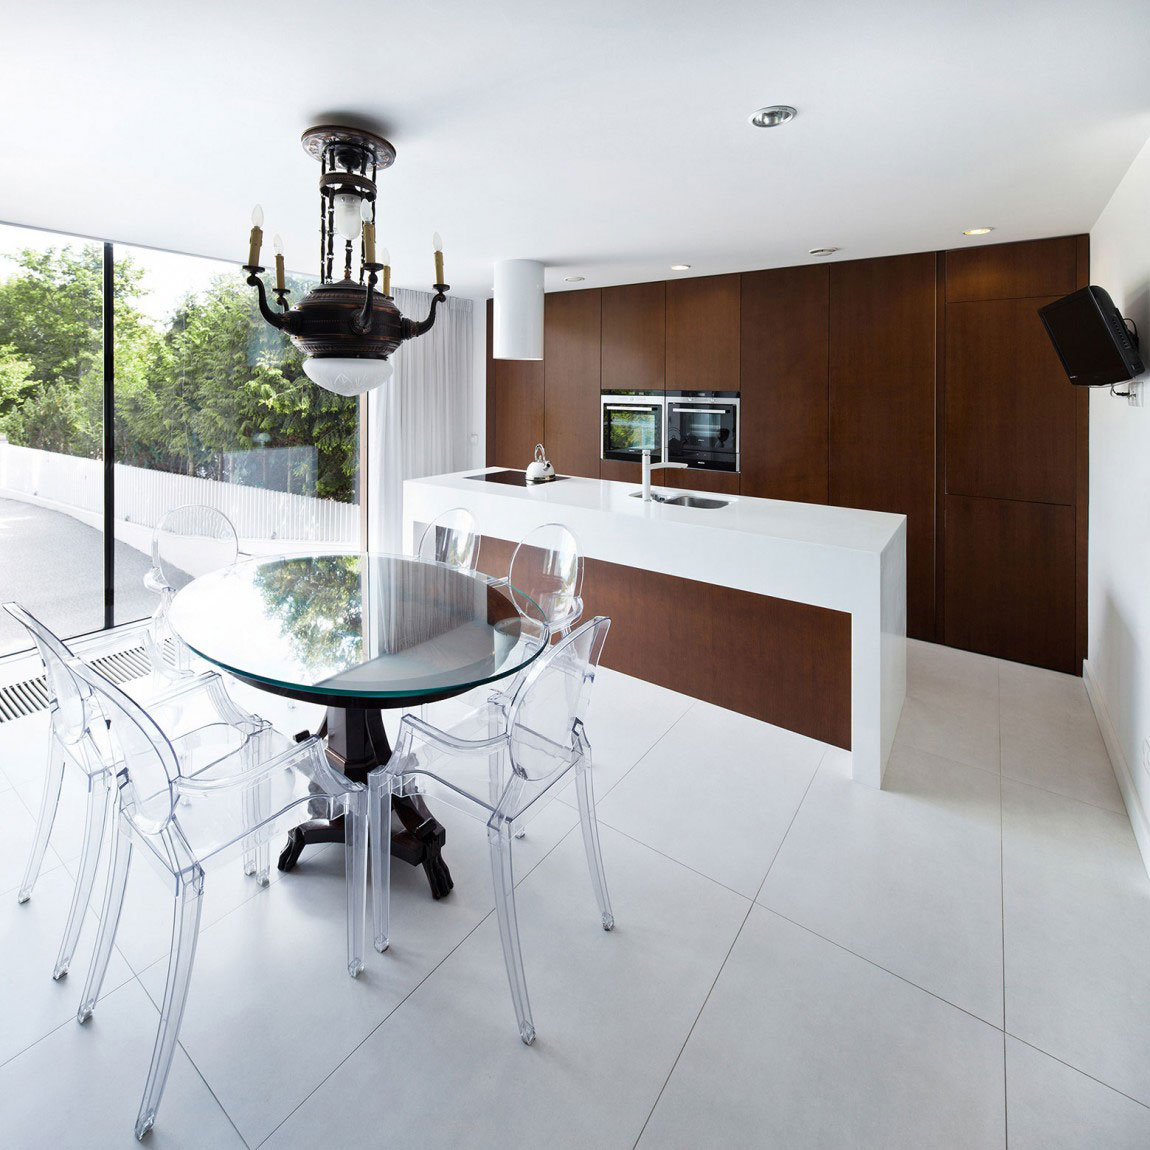 Examples-of-the-interior-design-of-the-kitchen-8 examples of what the interior design of the kitchen should look like